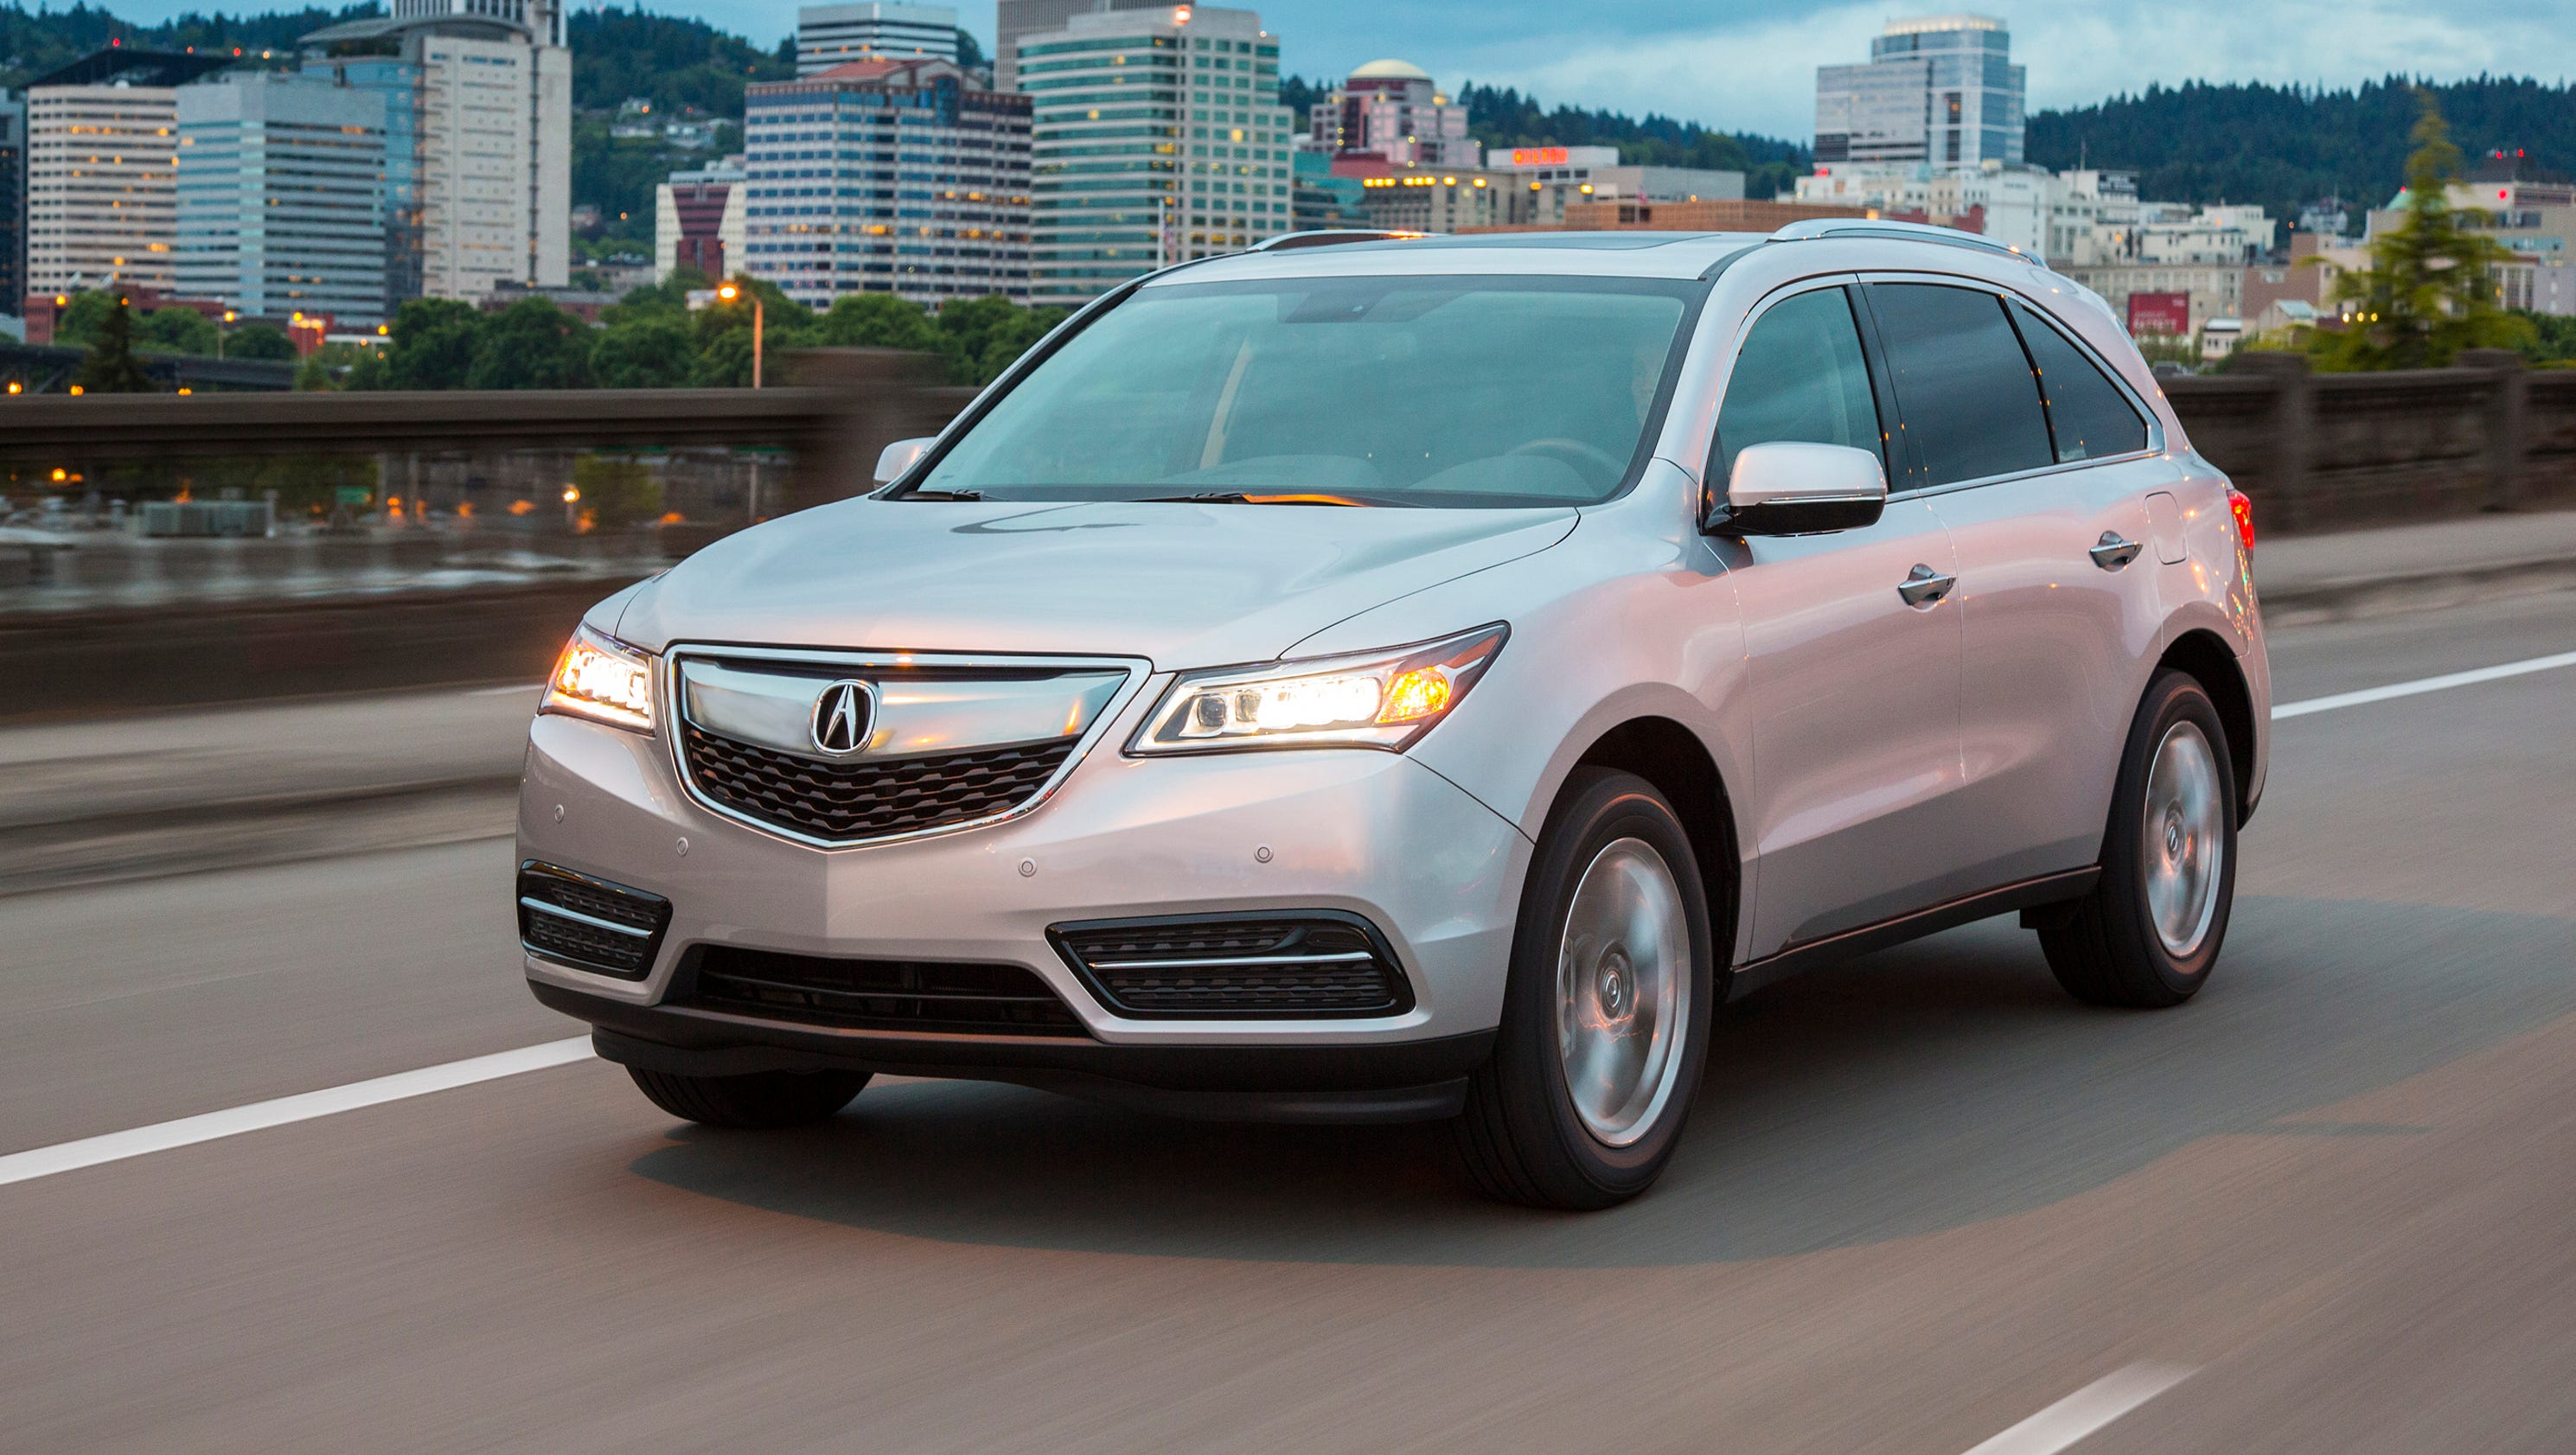 review by ben sh tlx test awd spec acura models a lewis road